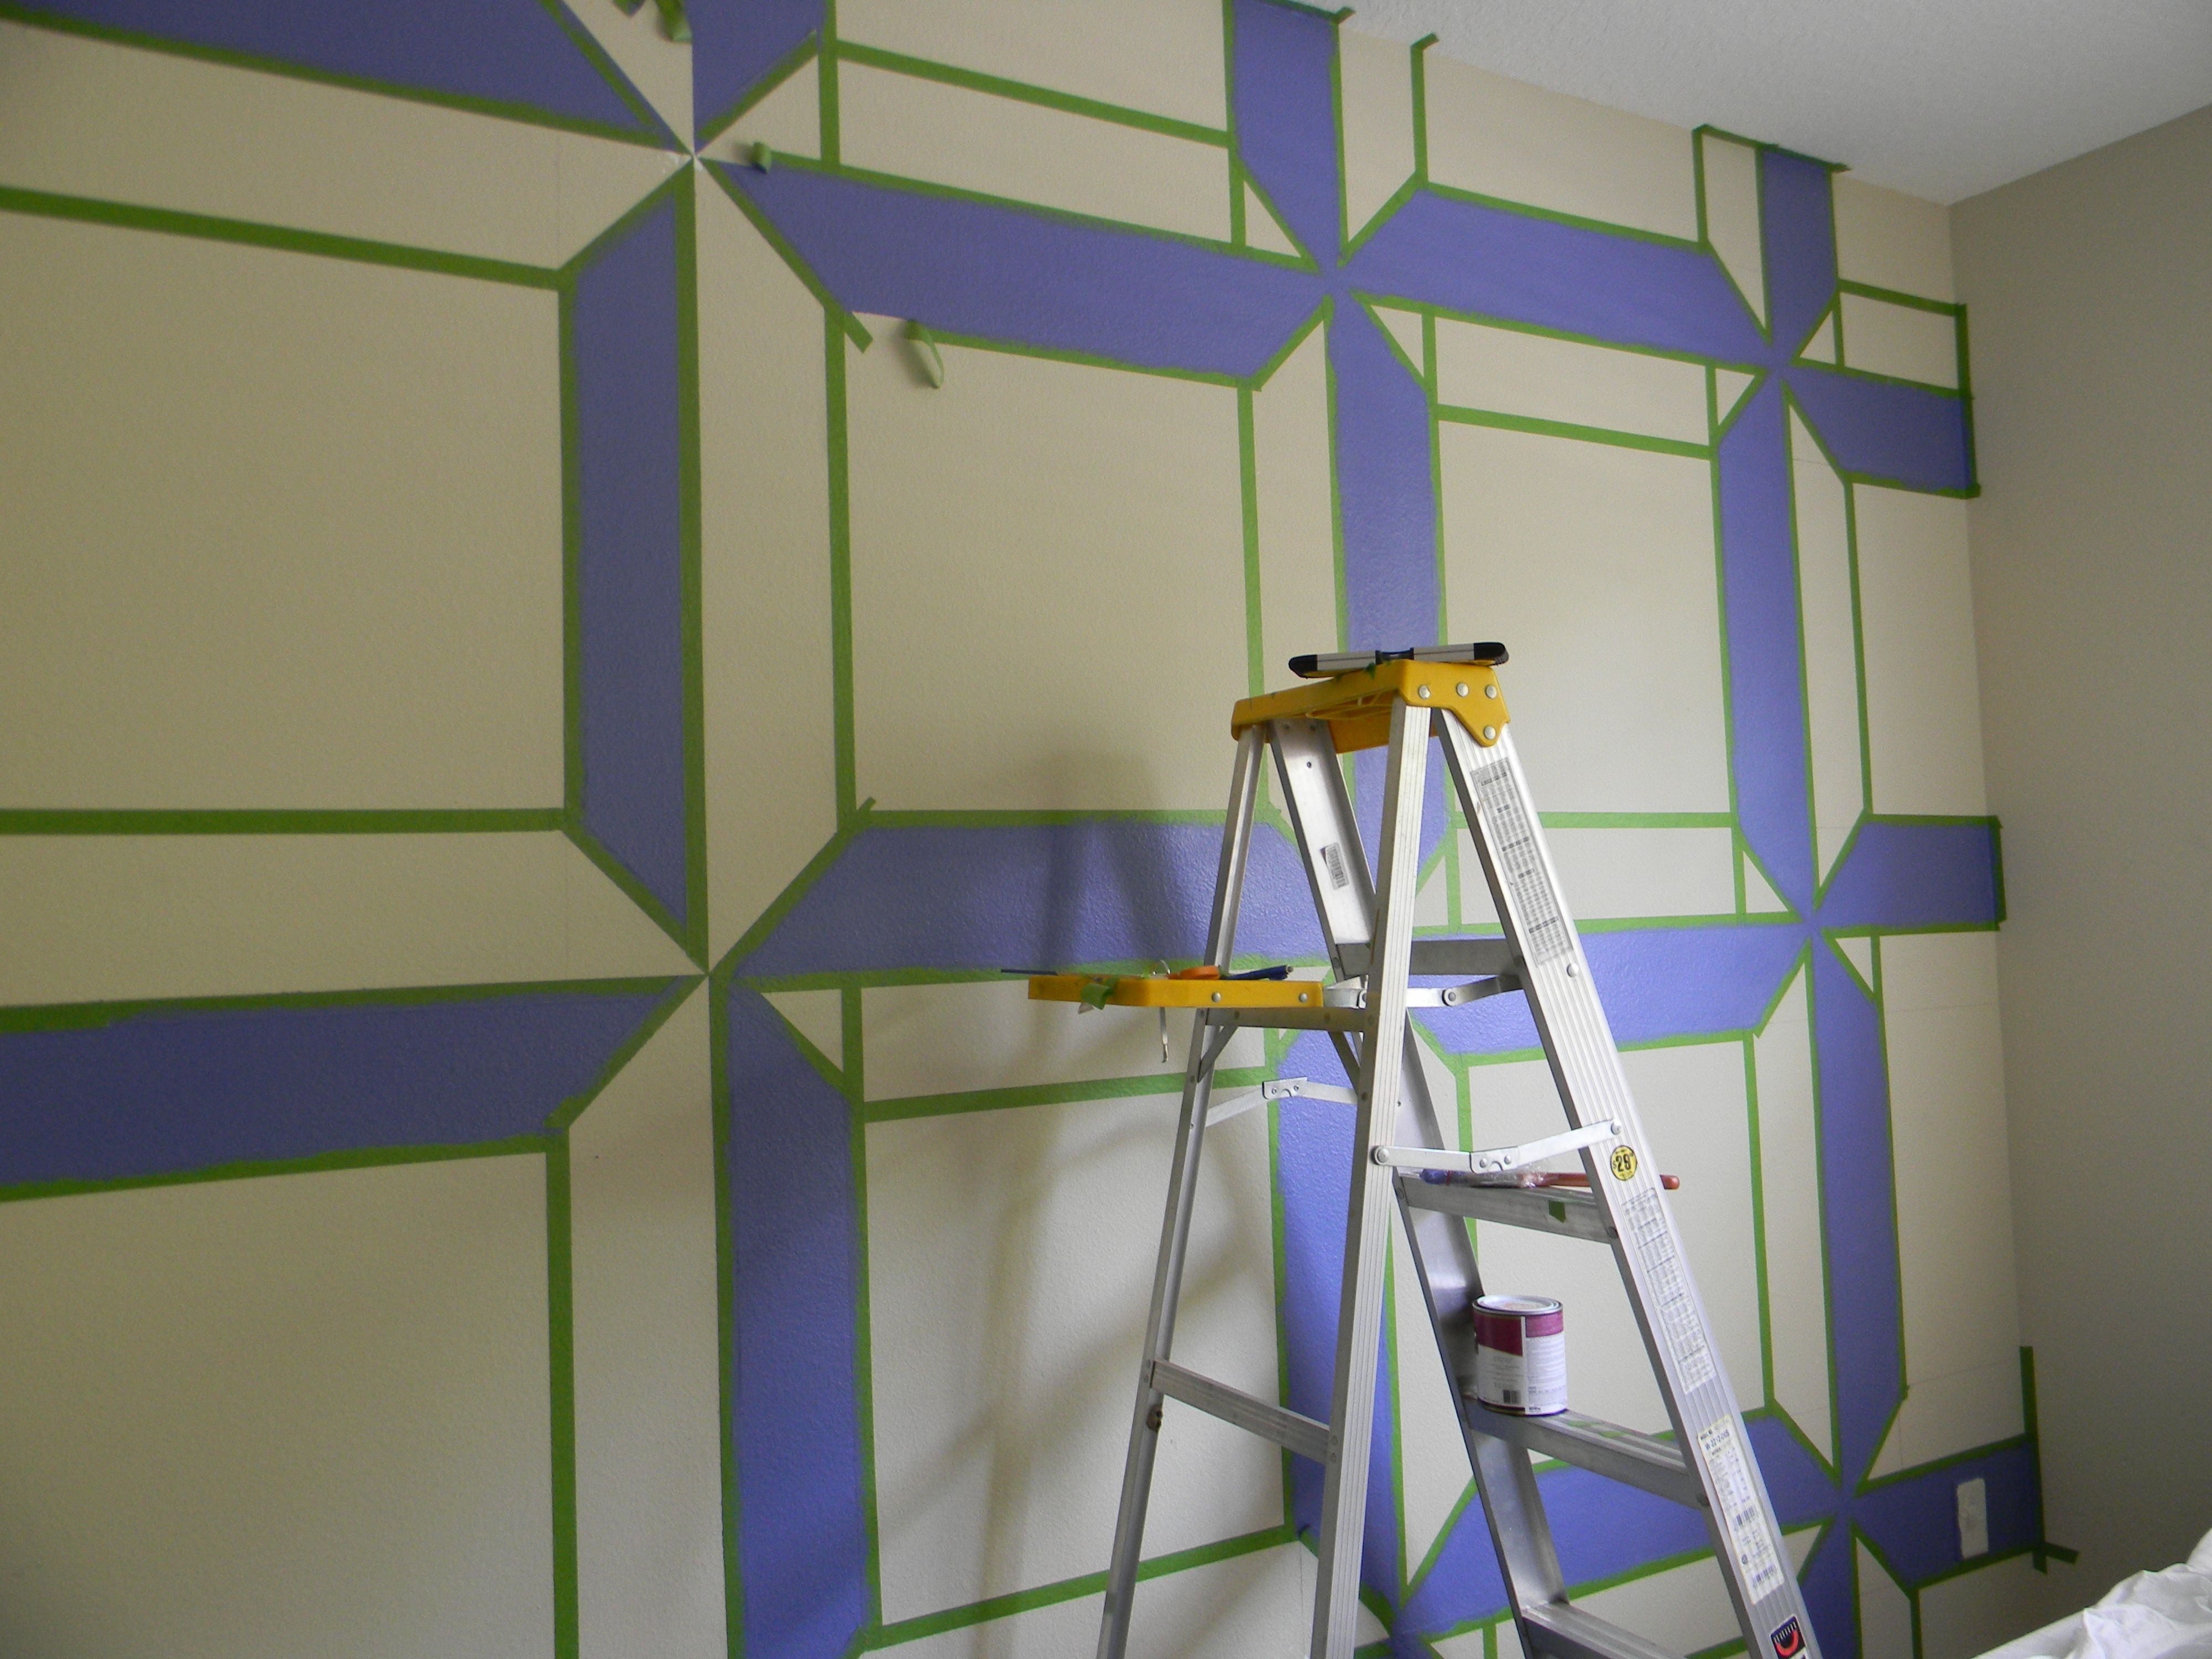 Before Use Frogger S Tape To Create The Geometric Pattern With Paint On The Wall Wall Design Painters Tape Design Wall Wall Design Painted